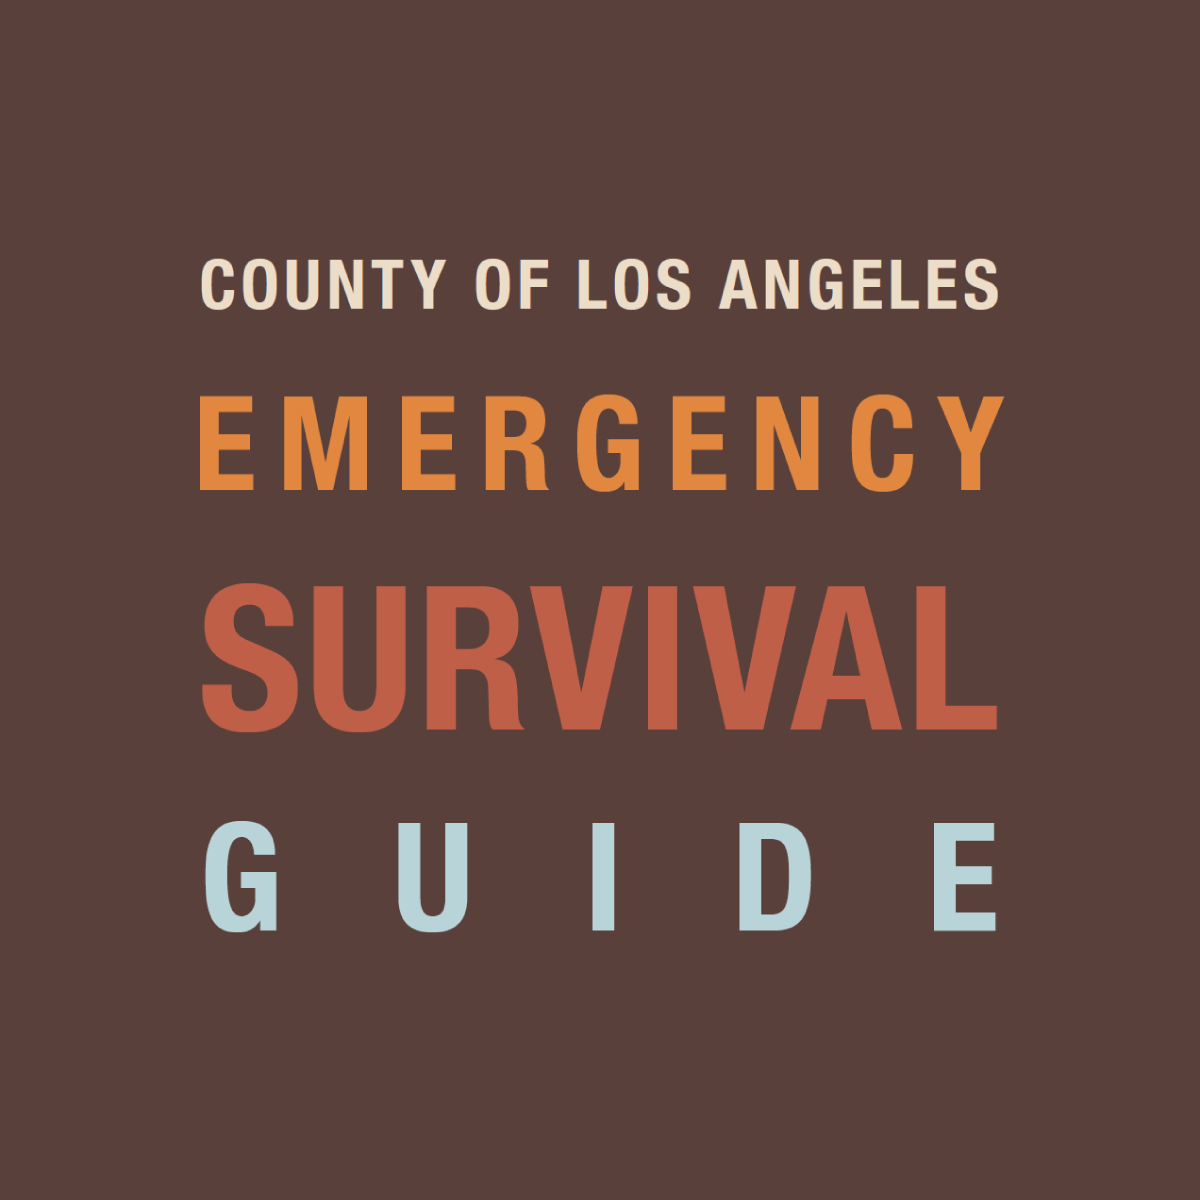 LA Emergency Guide - At Gamburd, we consider you a part of our extended family. So with that in mind, we want to provide you with a FREE Emergency Survival Guide that will help you be prepared for whatever challenges the future may hold.